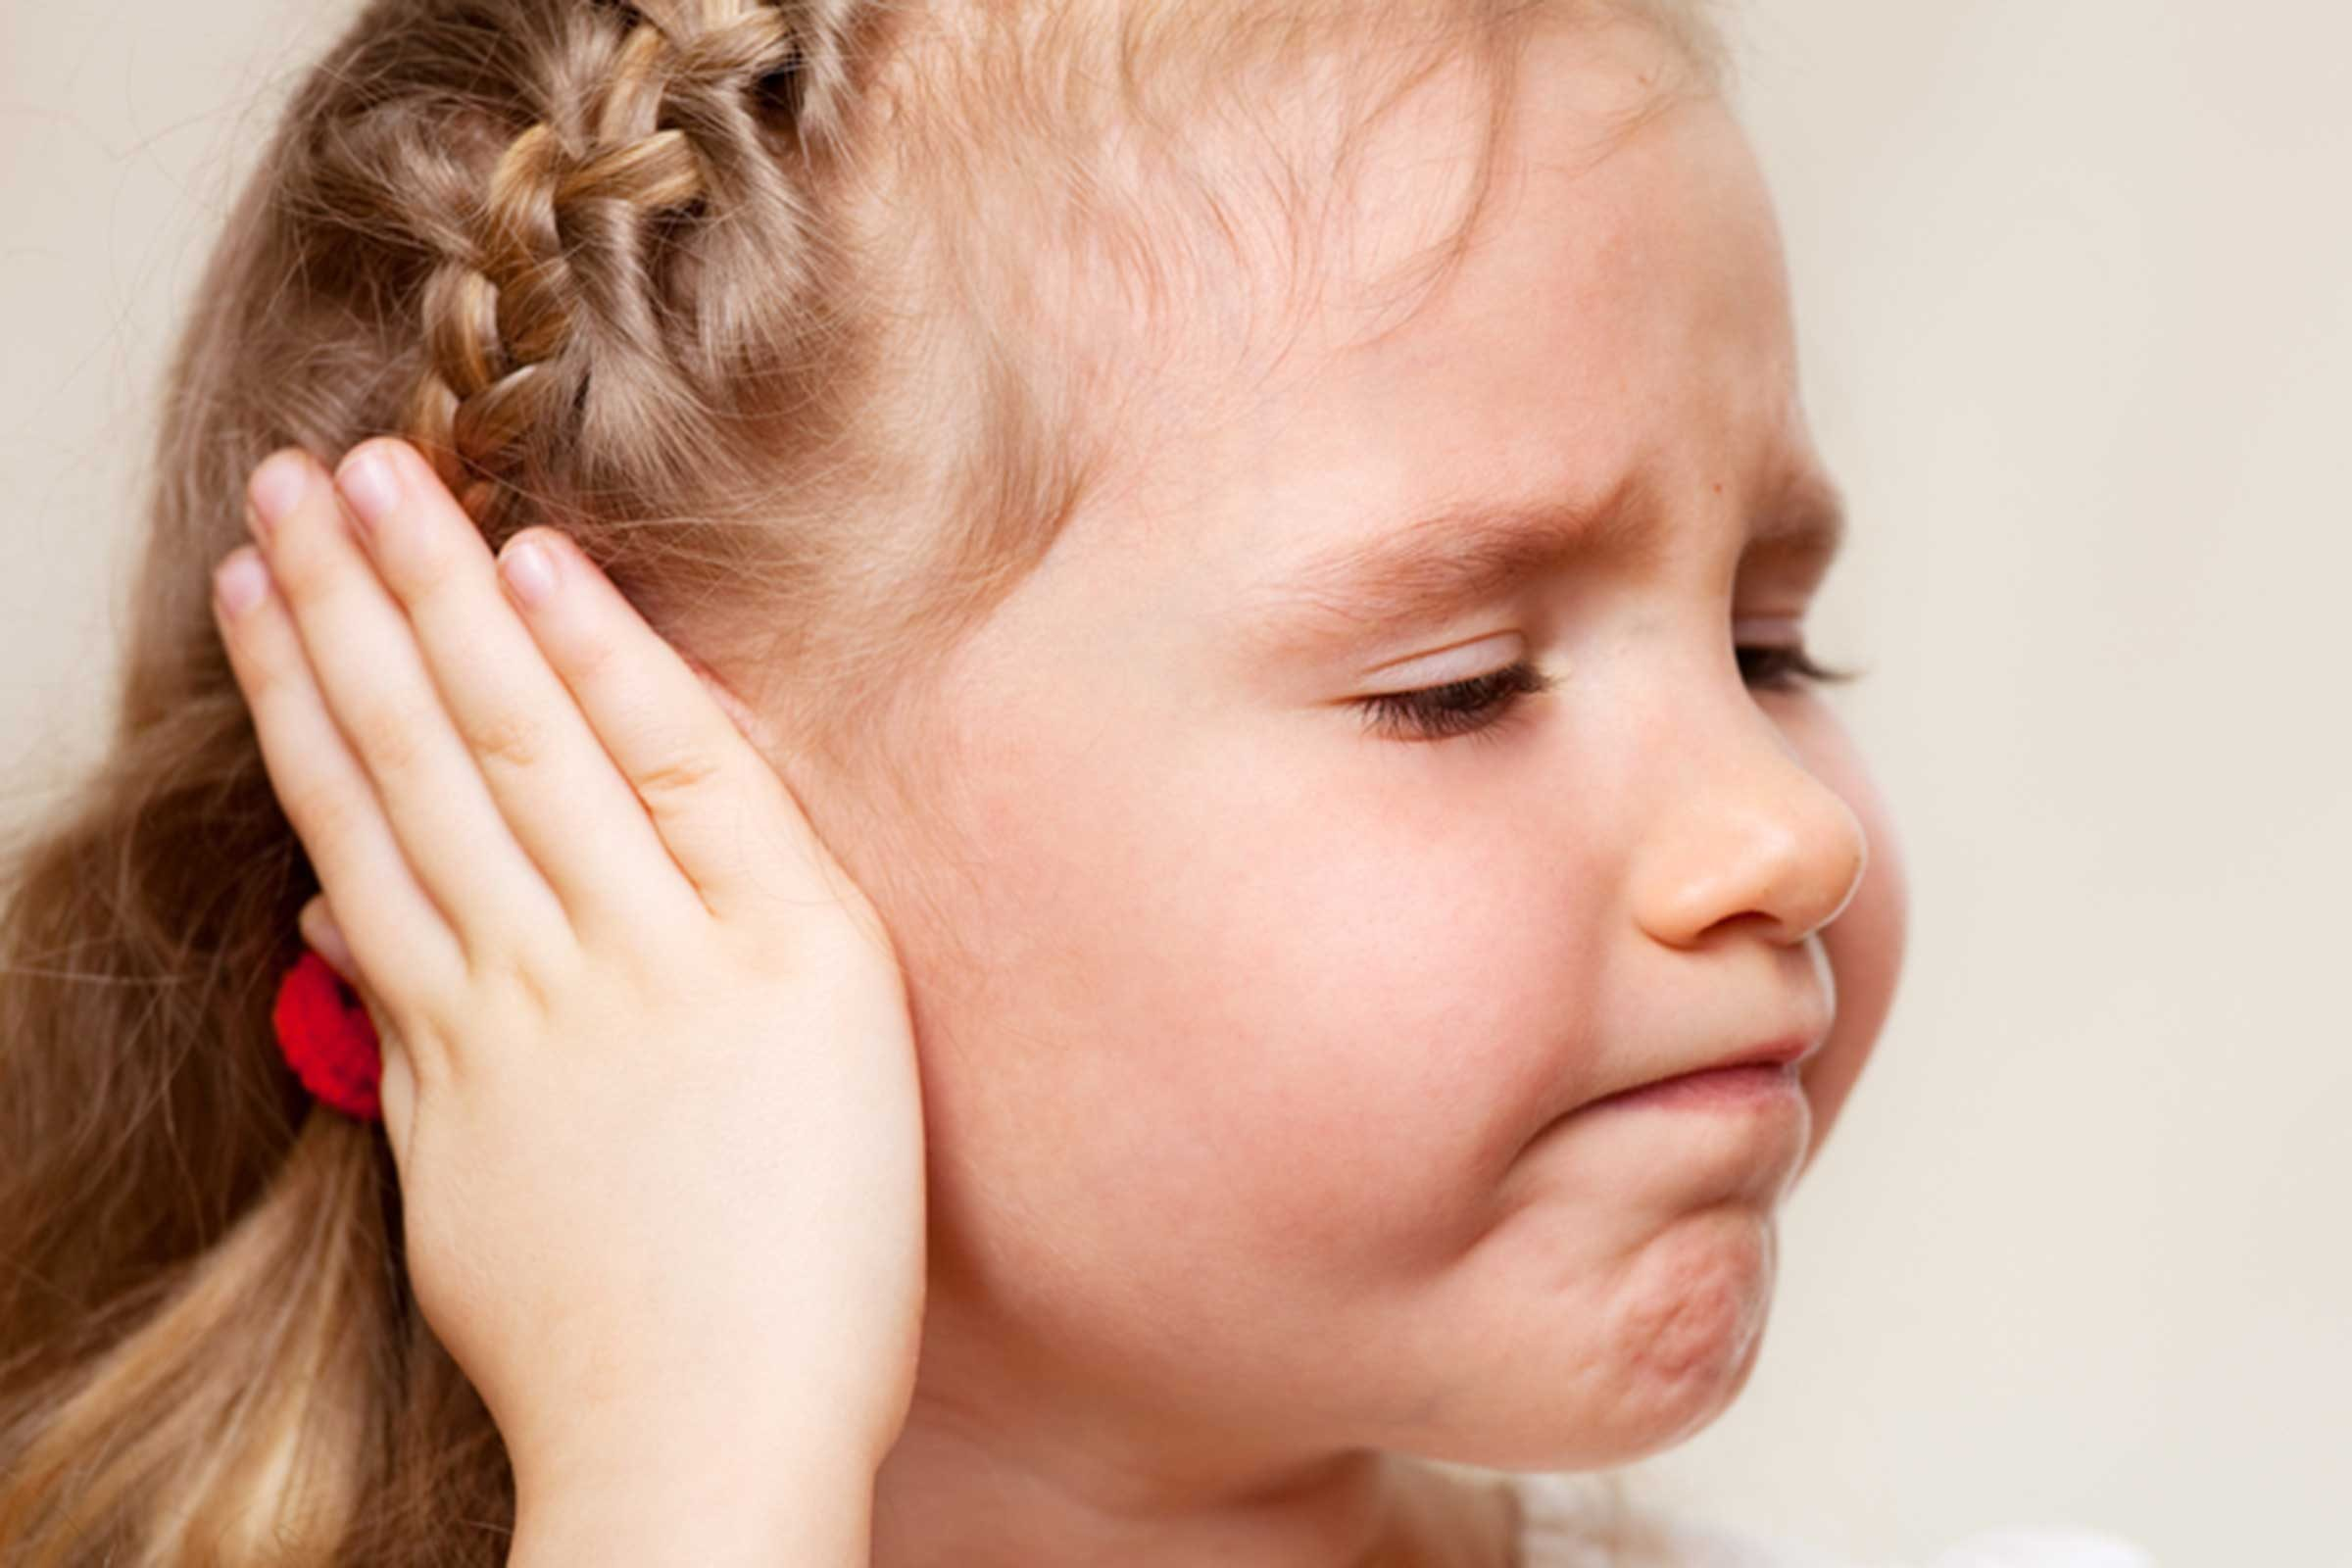 ear infection and earache home remedies | reader's digest